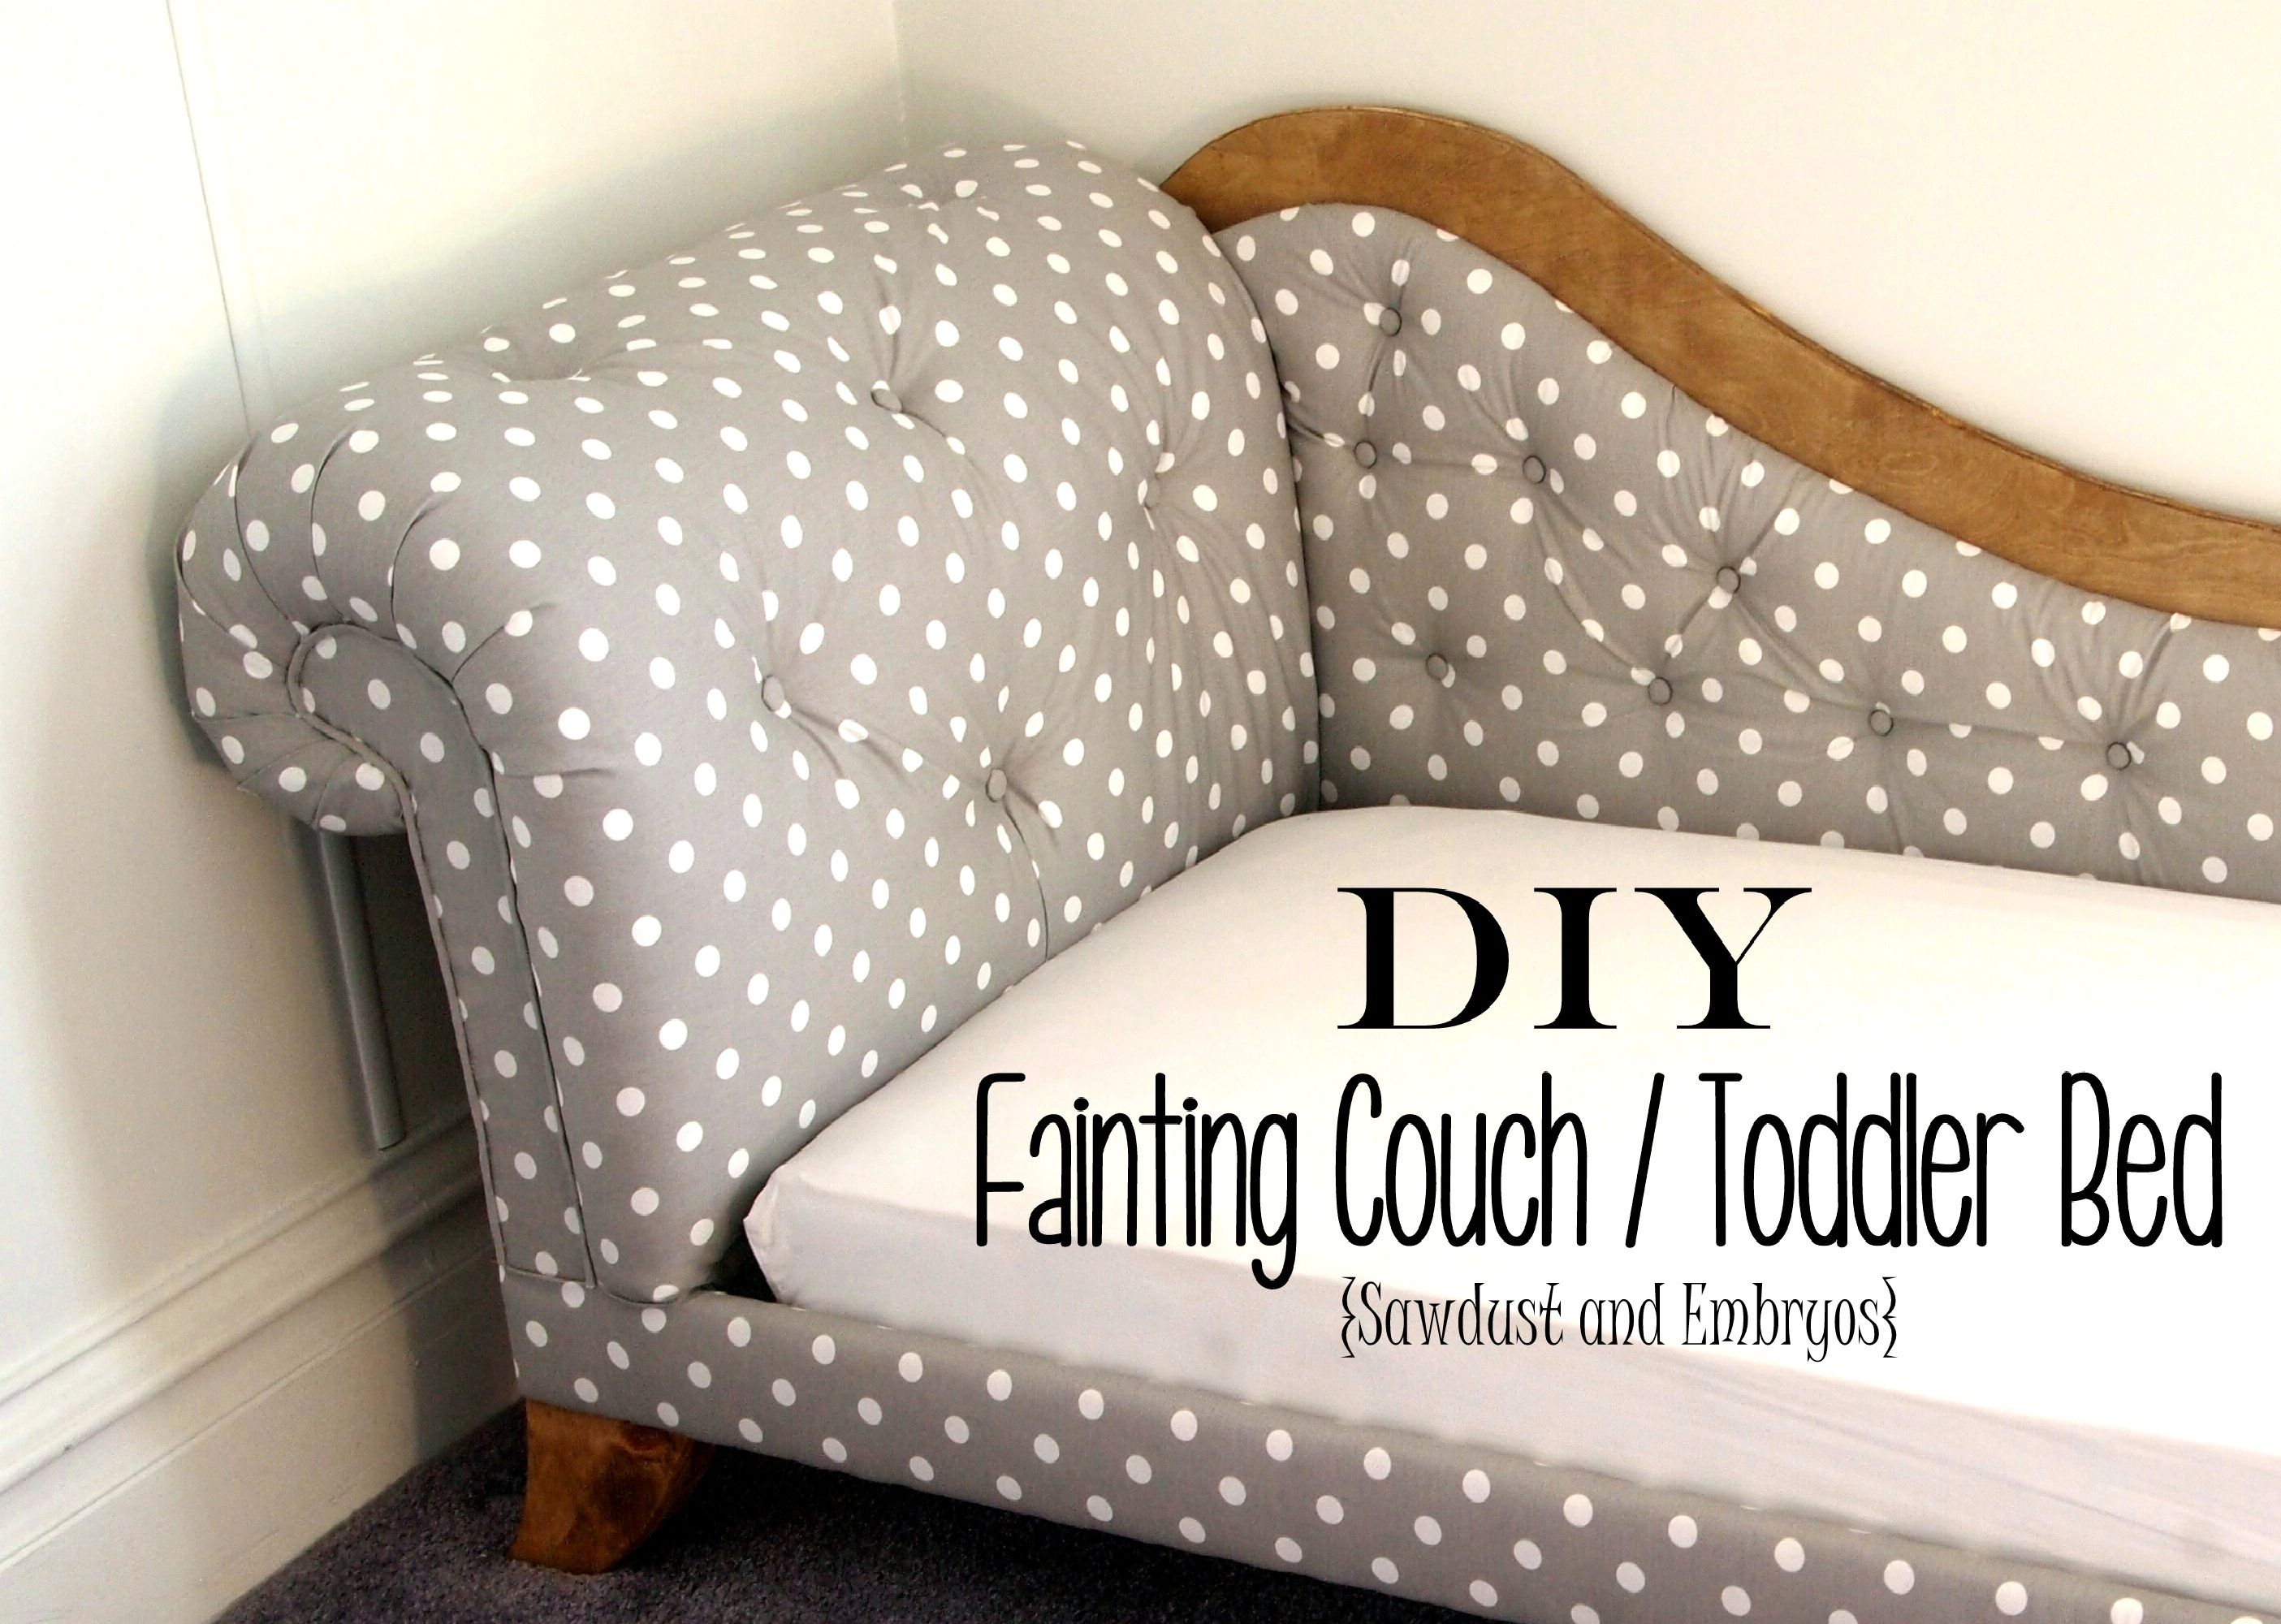 Toddler Bed Fainting Couch Tufting & Upholstery